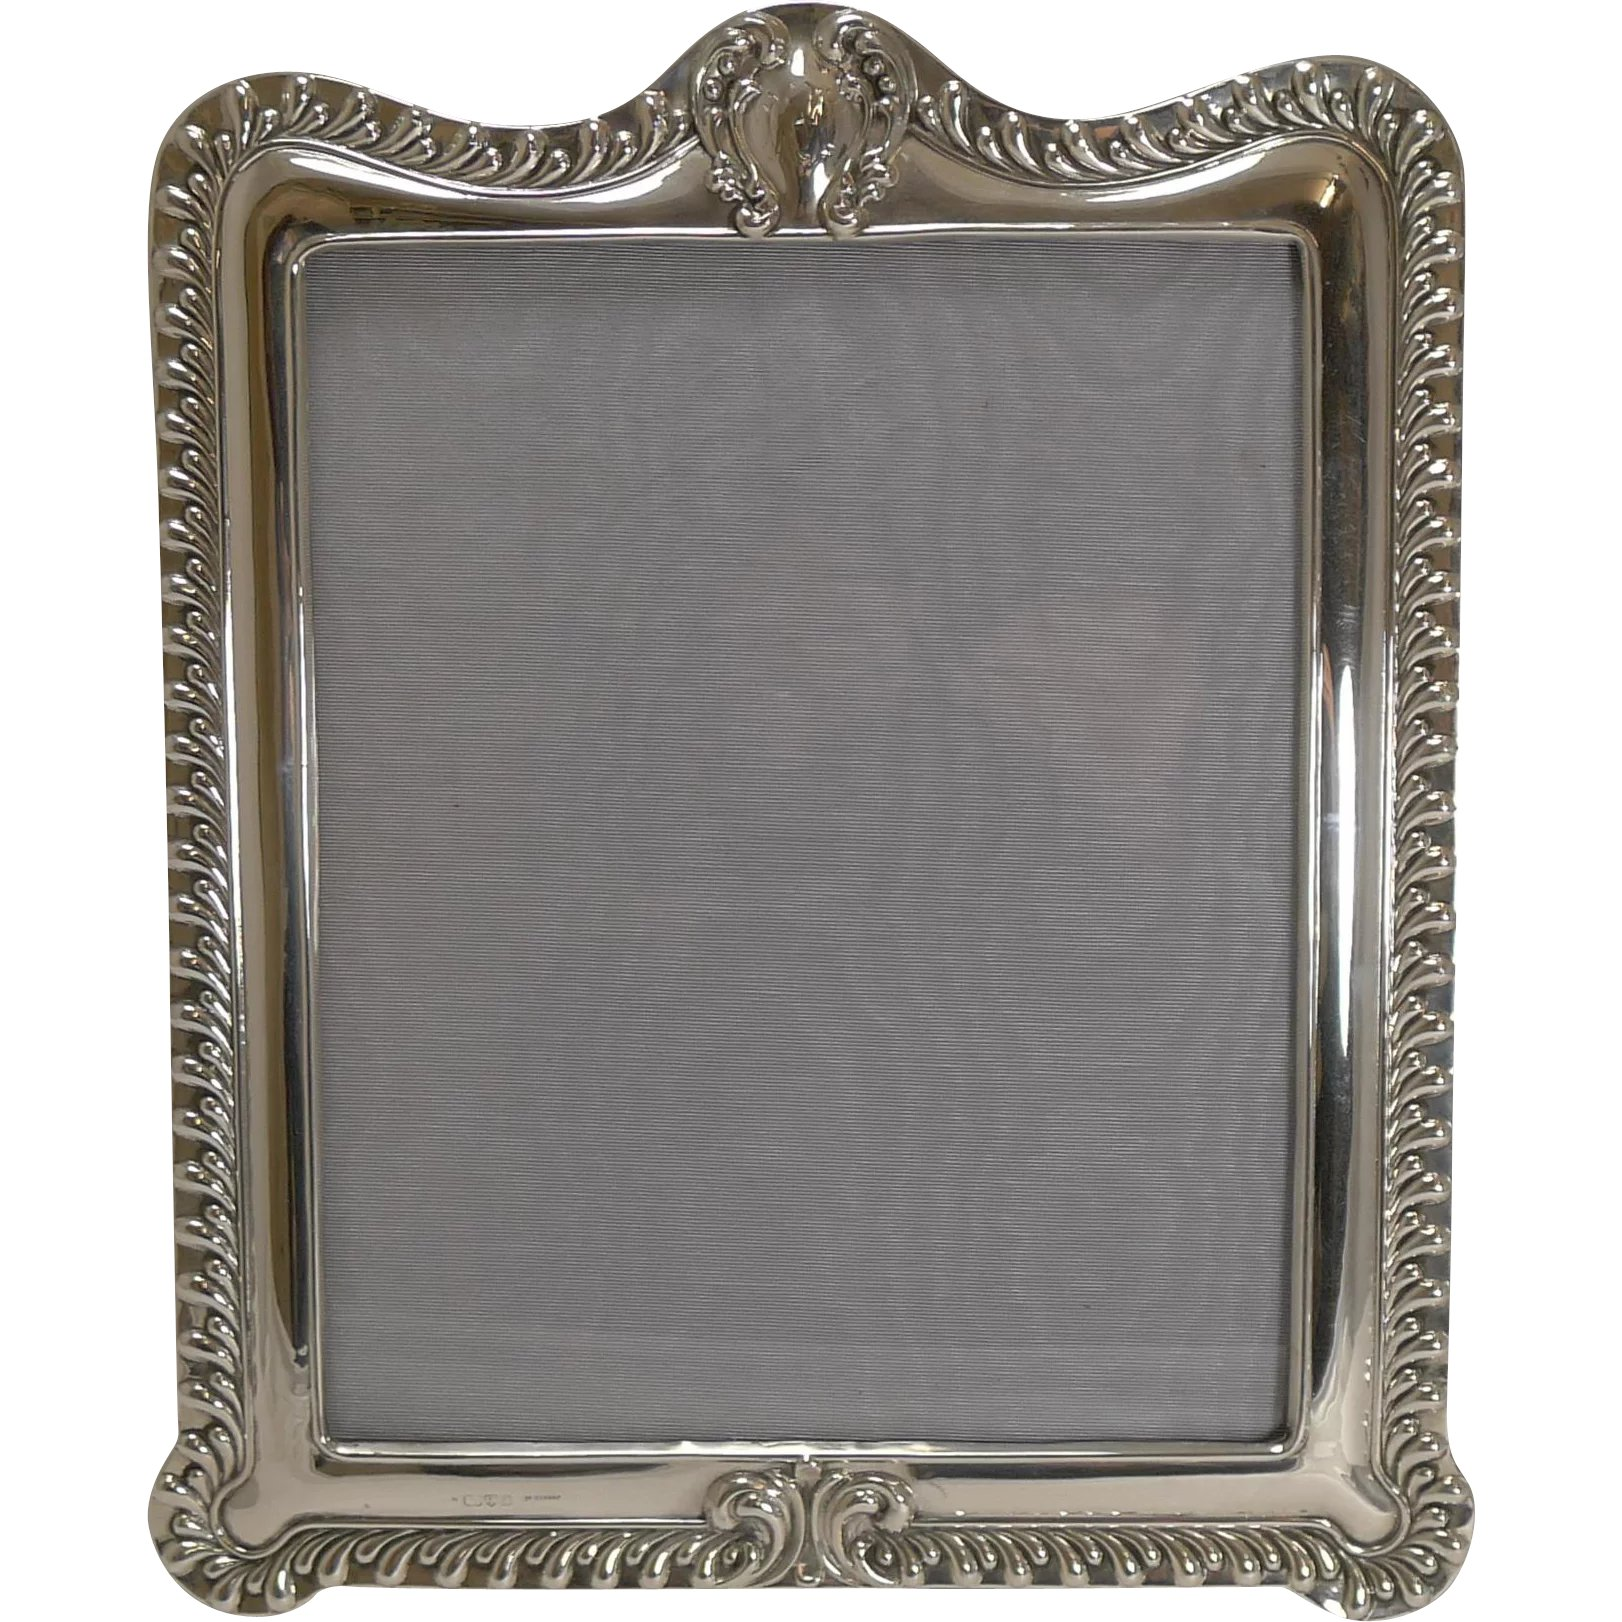 Antique Silver Photo Frames South Africa | pixels1st.com